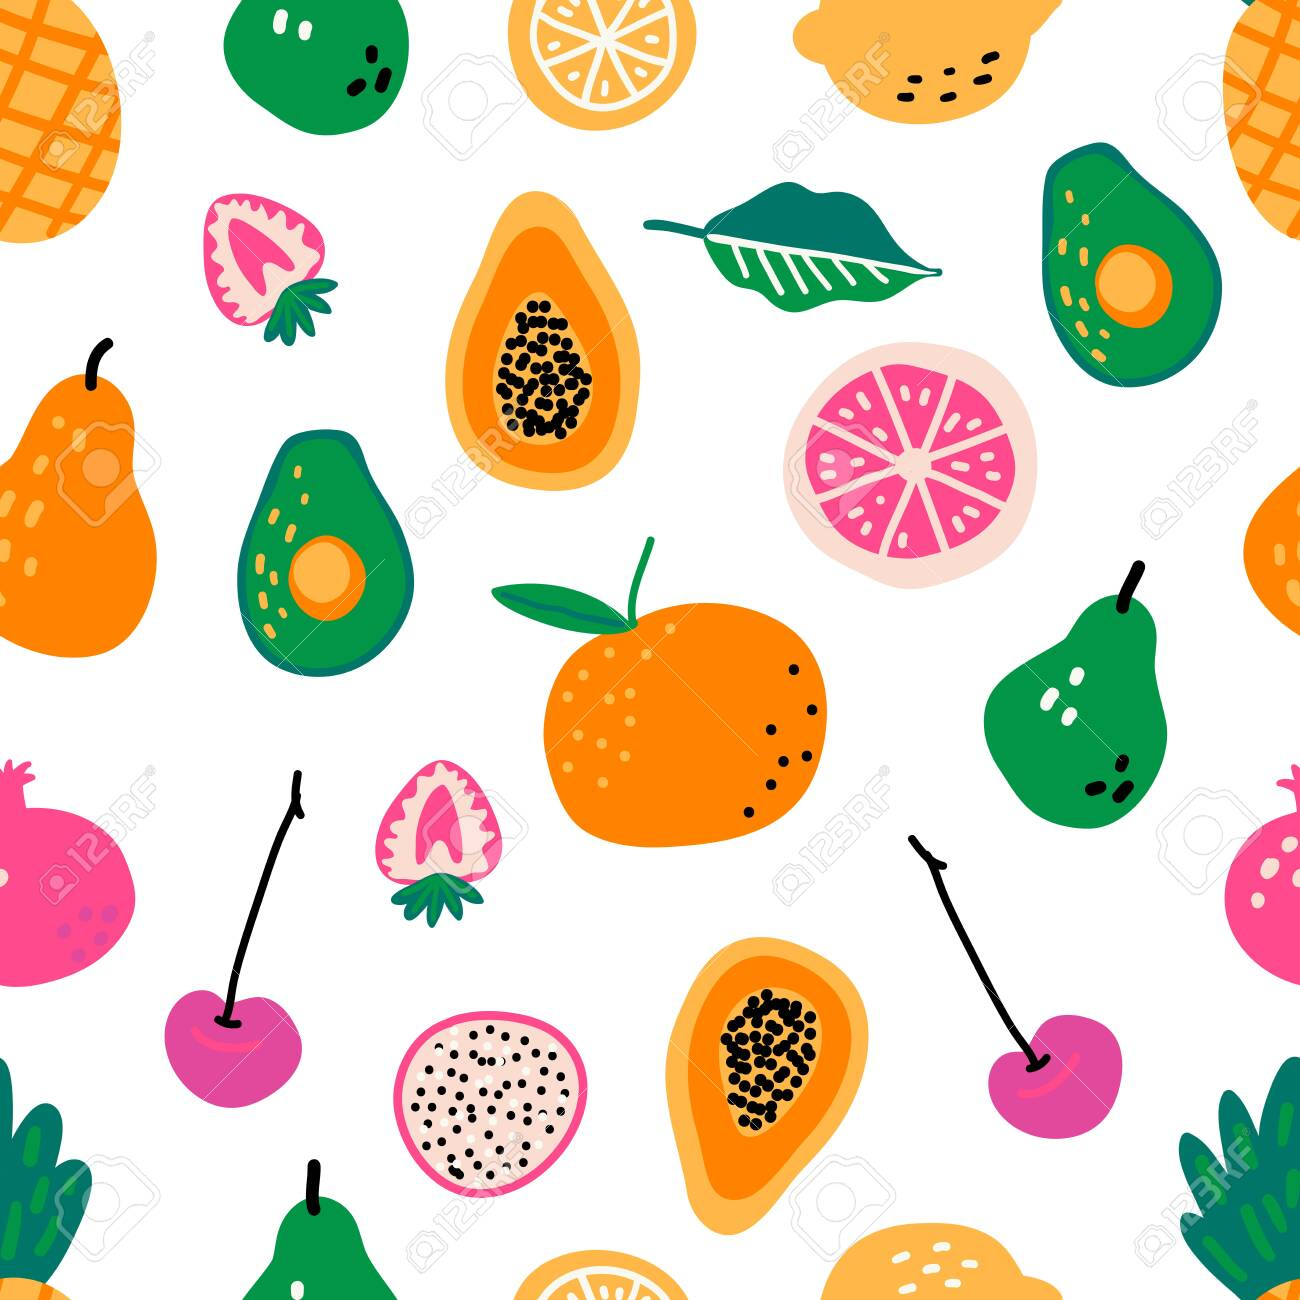 Seamless pattern with fruits. Hand drawn vector illustration. Cooking ingredients or courses background. Recipe cartoon template. Scandinavian style cafe menu greengrocery, banner, cookbook page. - 149439649